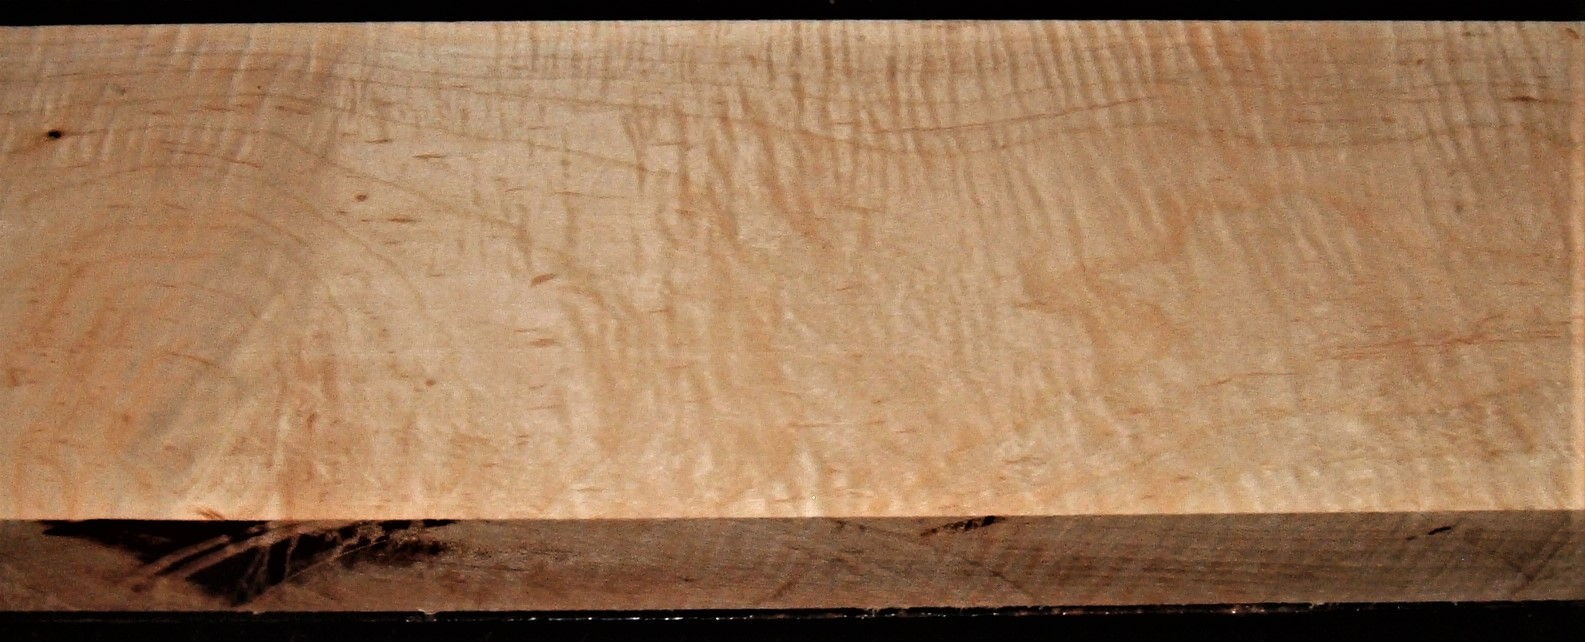 SMS-2638JJ, 1-15/16x6-3/8x26, Curly Tiger Soft Maple